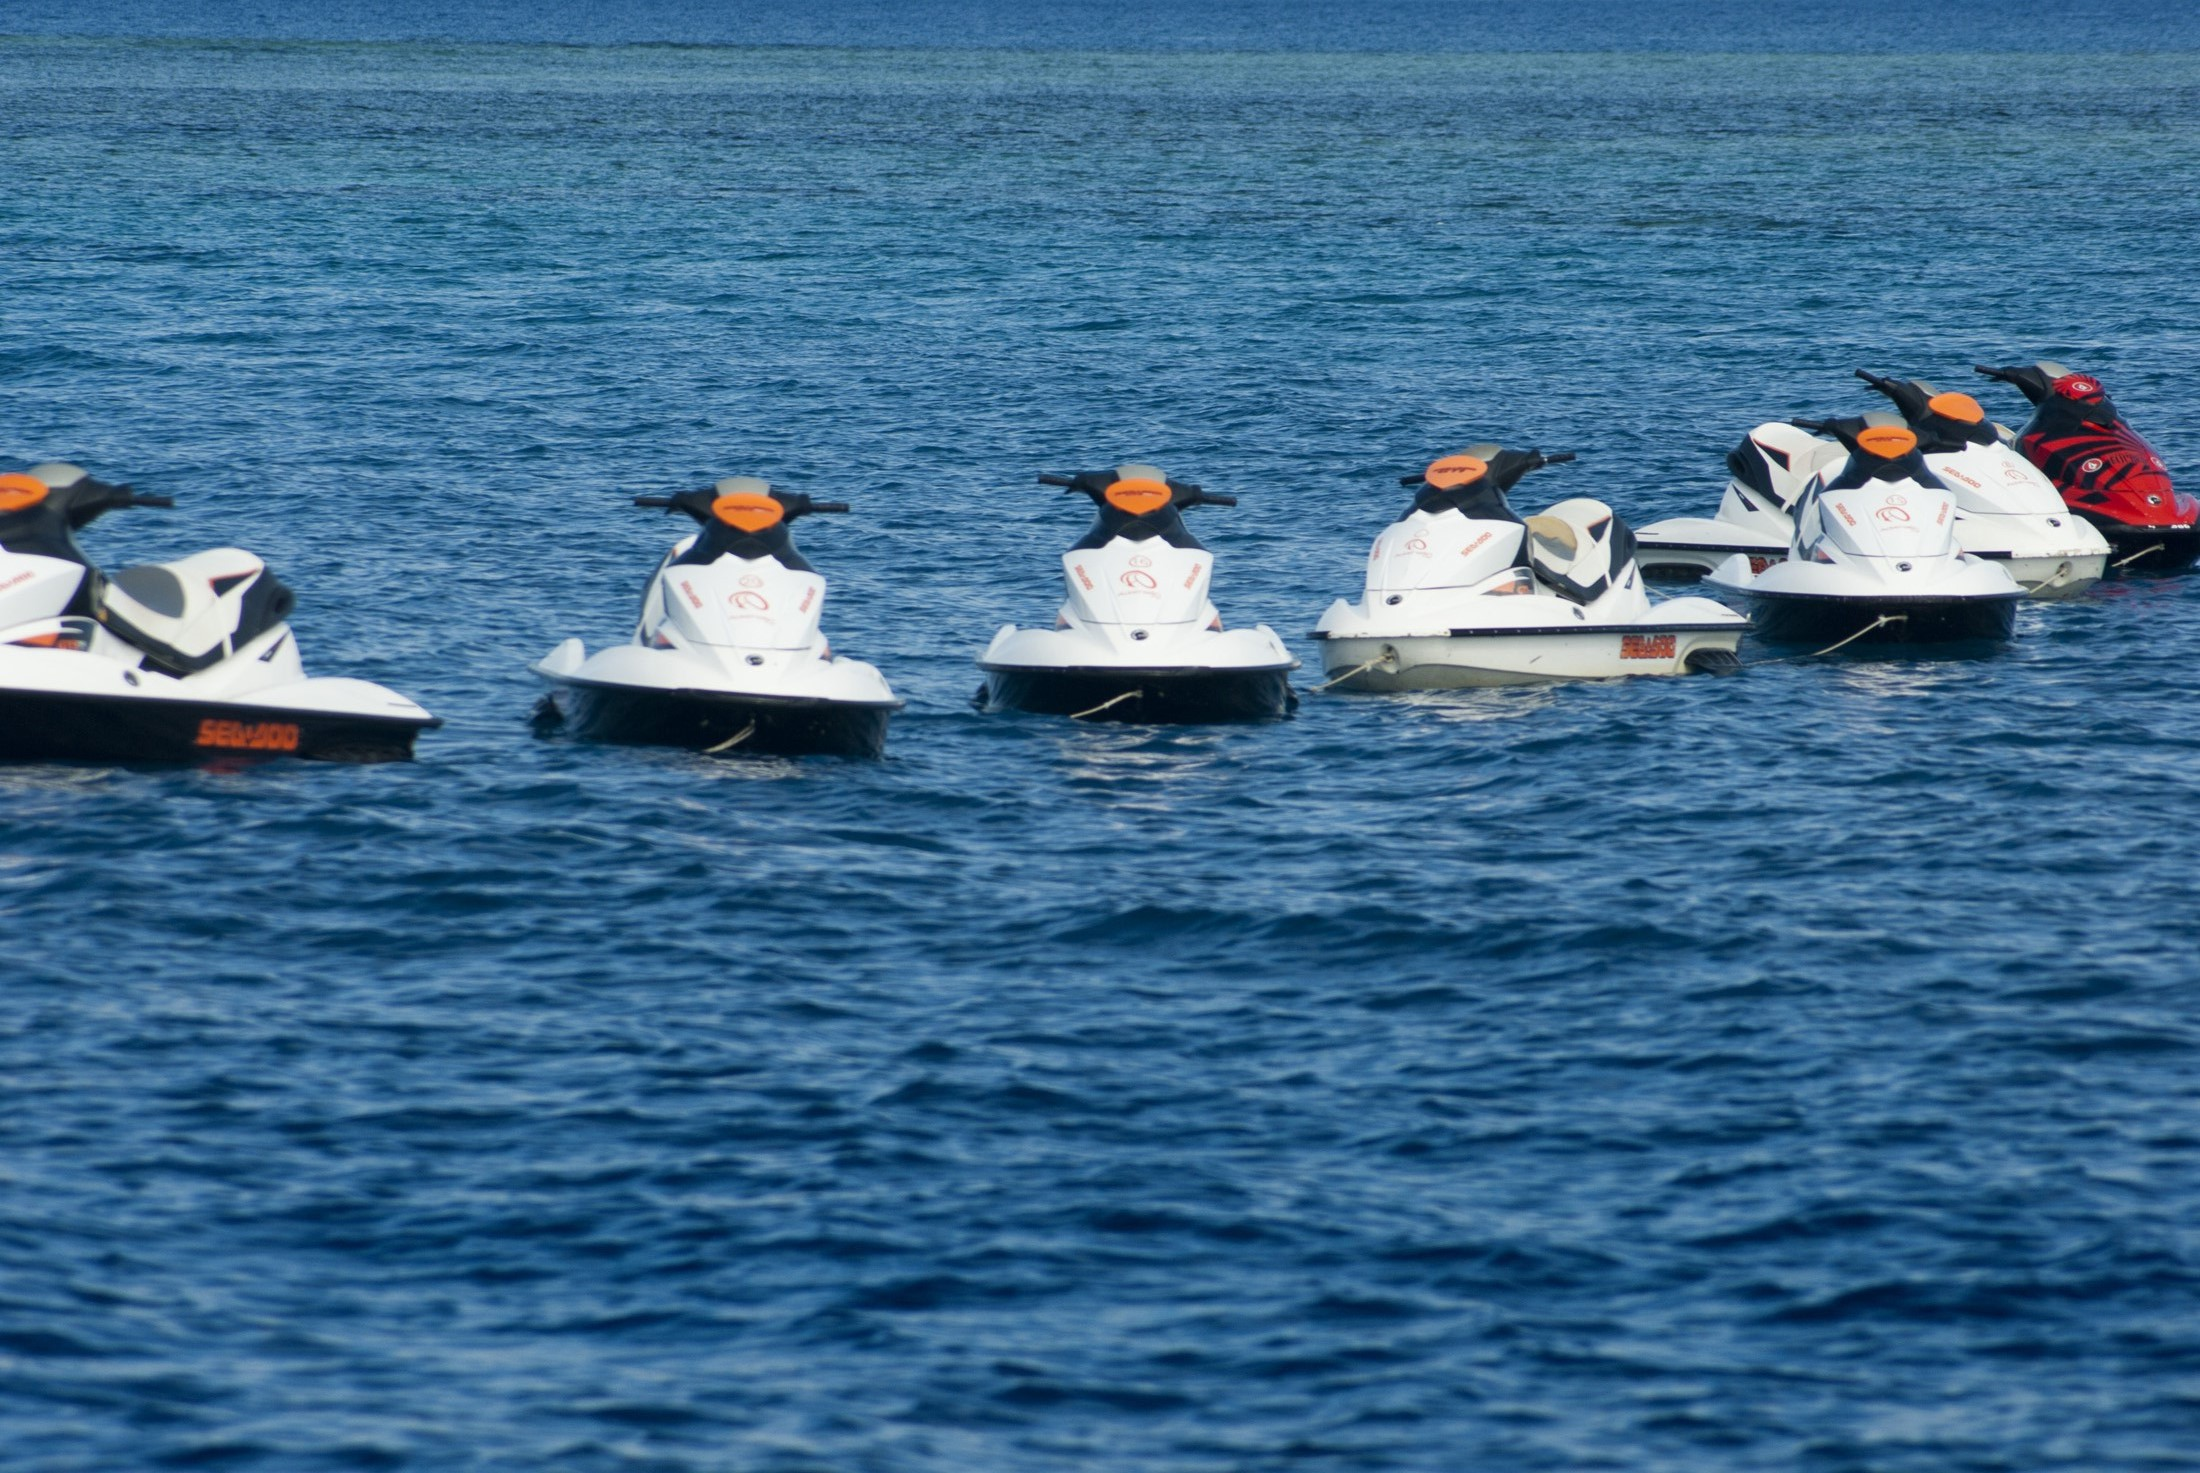 Jet skis moored in a line on open ocean waiting to be taken out on the water for personal enjoyment and recreation